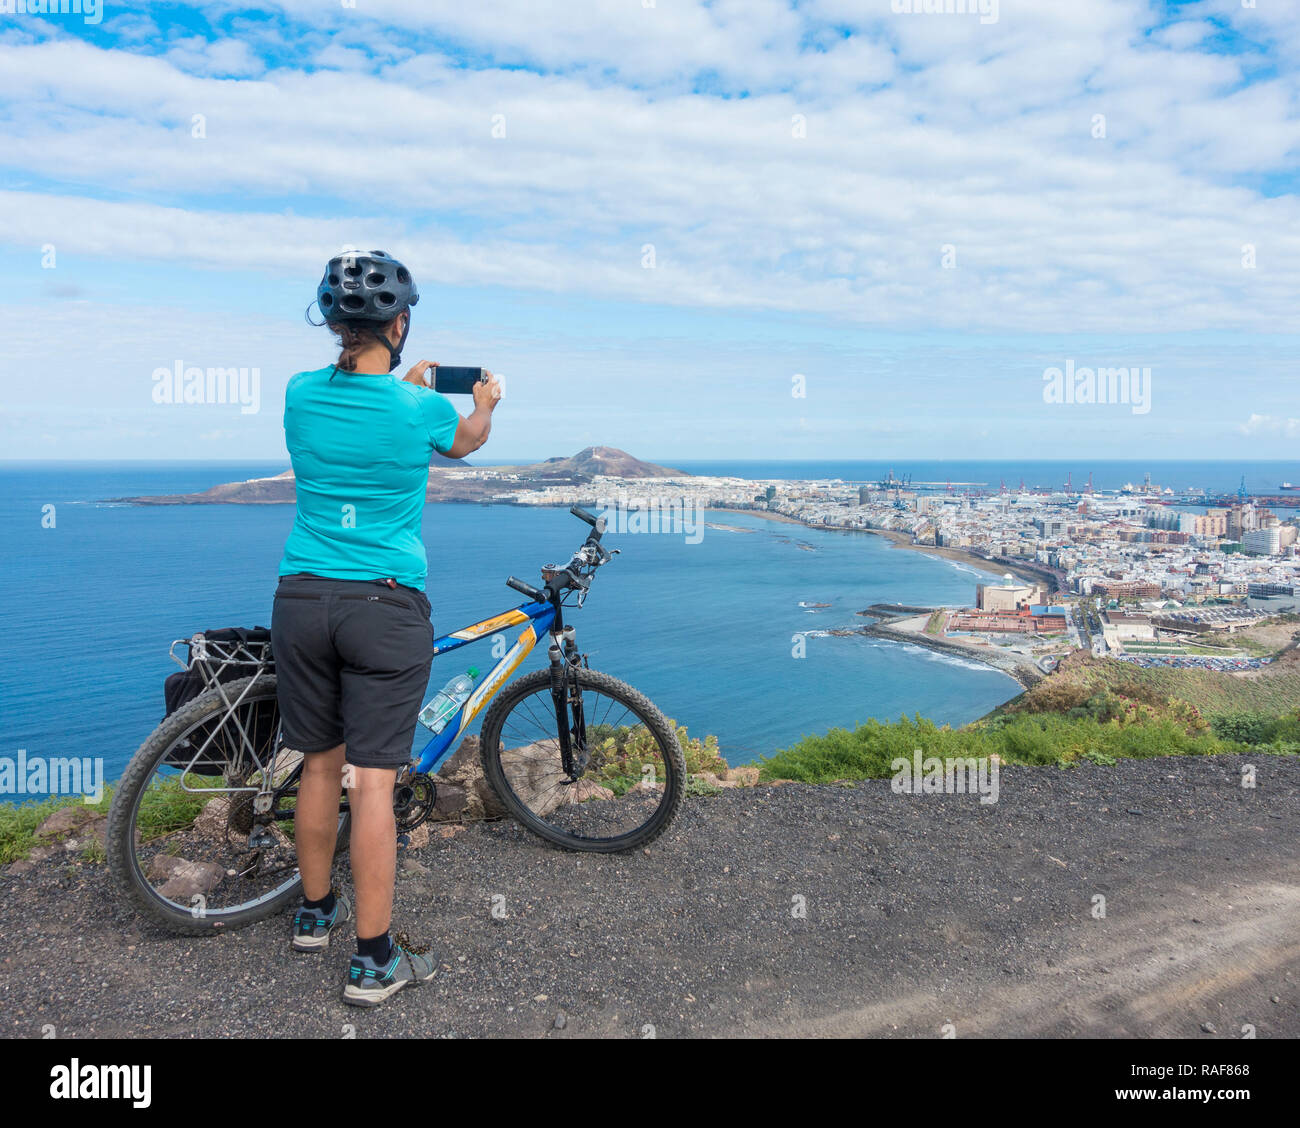 Female mountain biker on mountain overlooking Las Canteras beach and Las Palmas city on Gran Canaria, Canary Islands, Spain - Stock Image